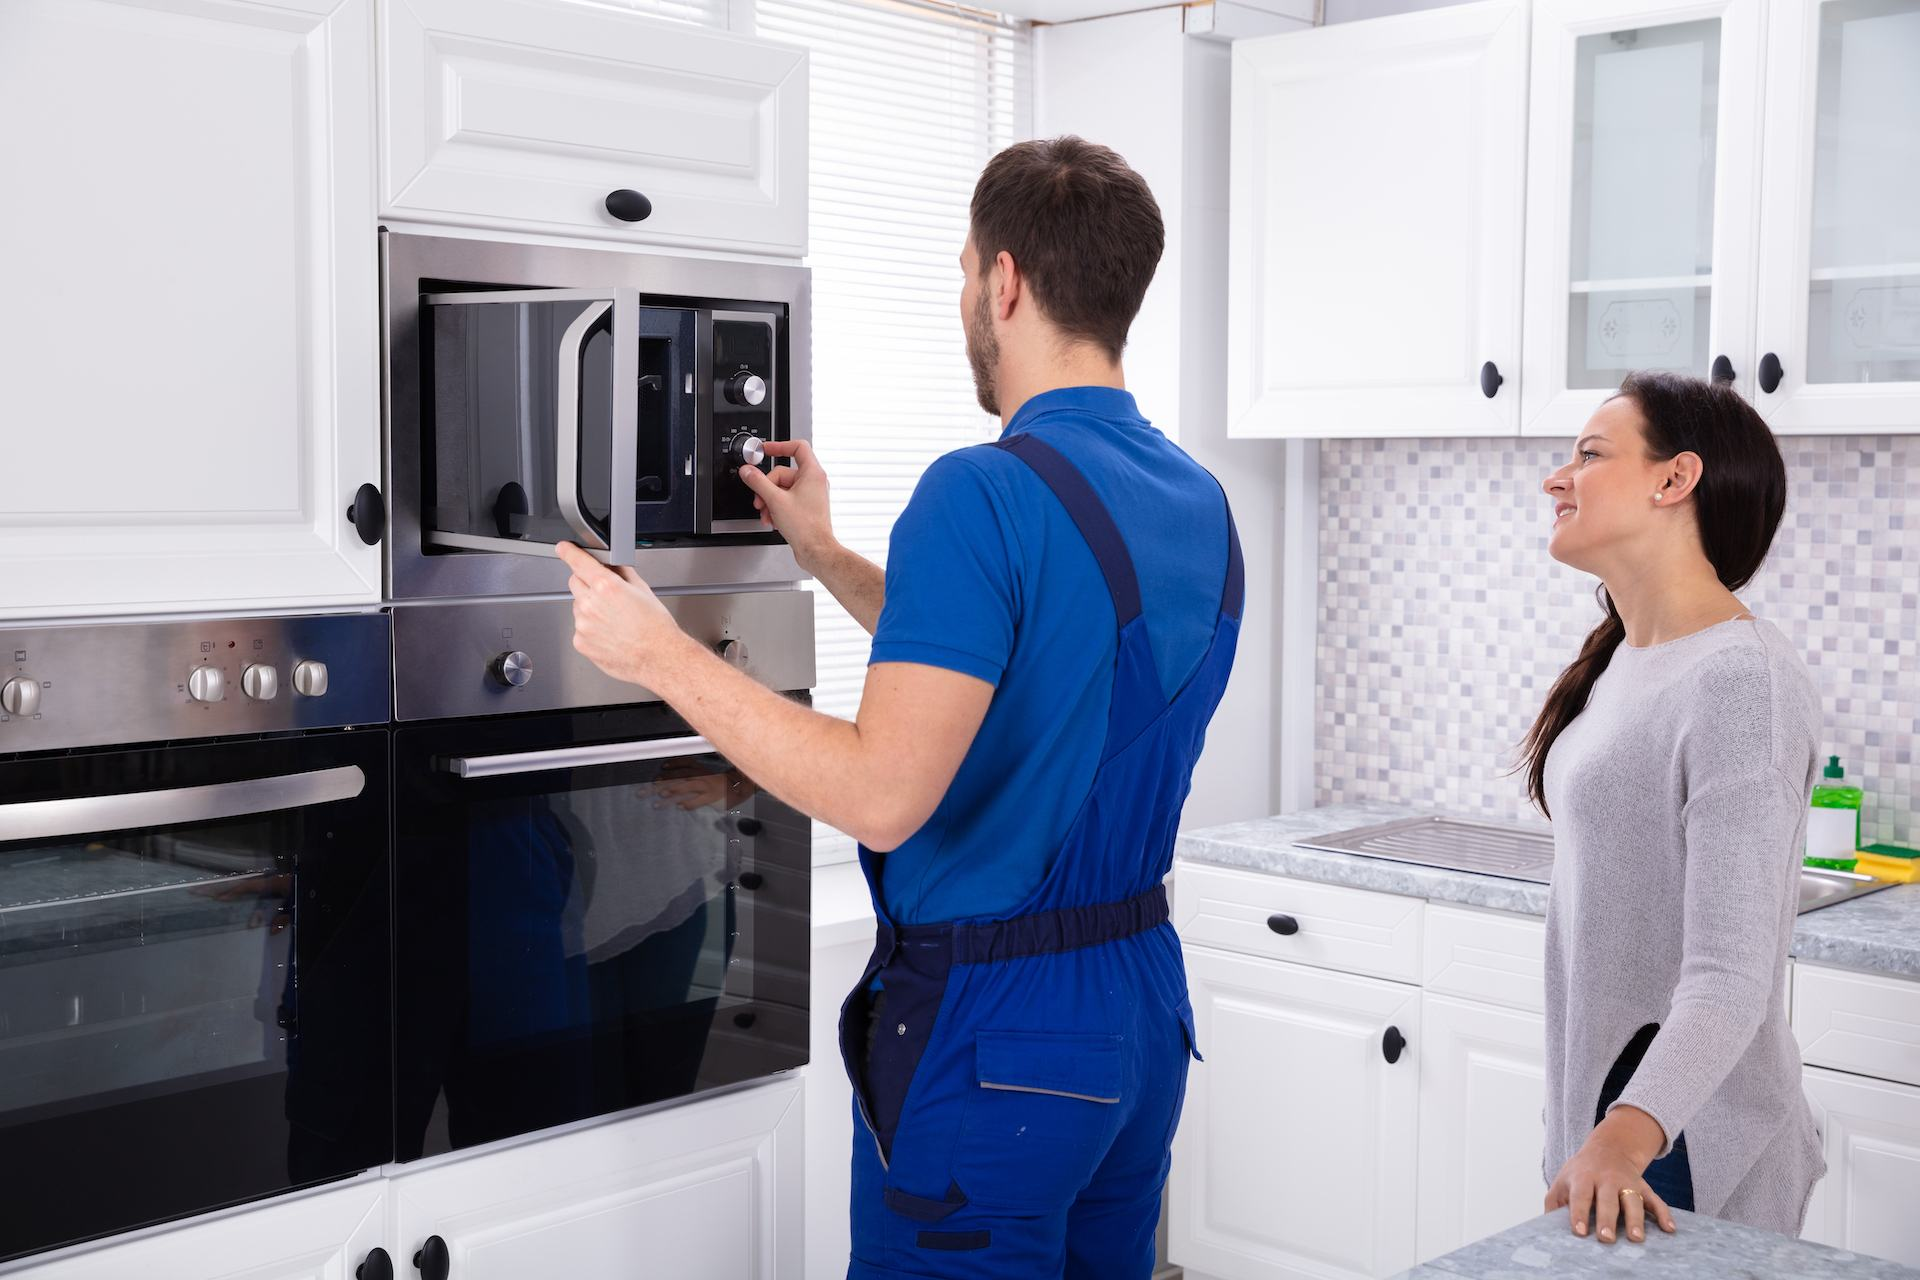 repair technician working on microwave oven